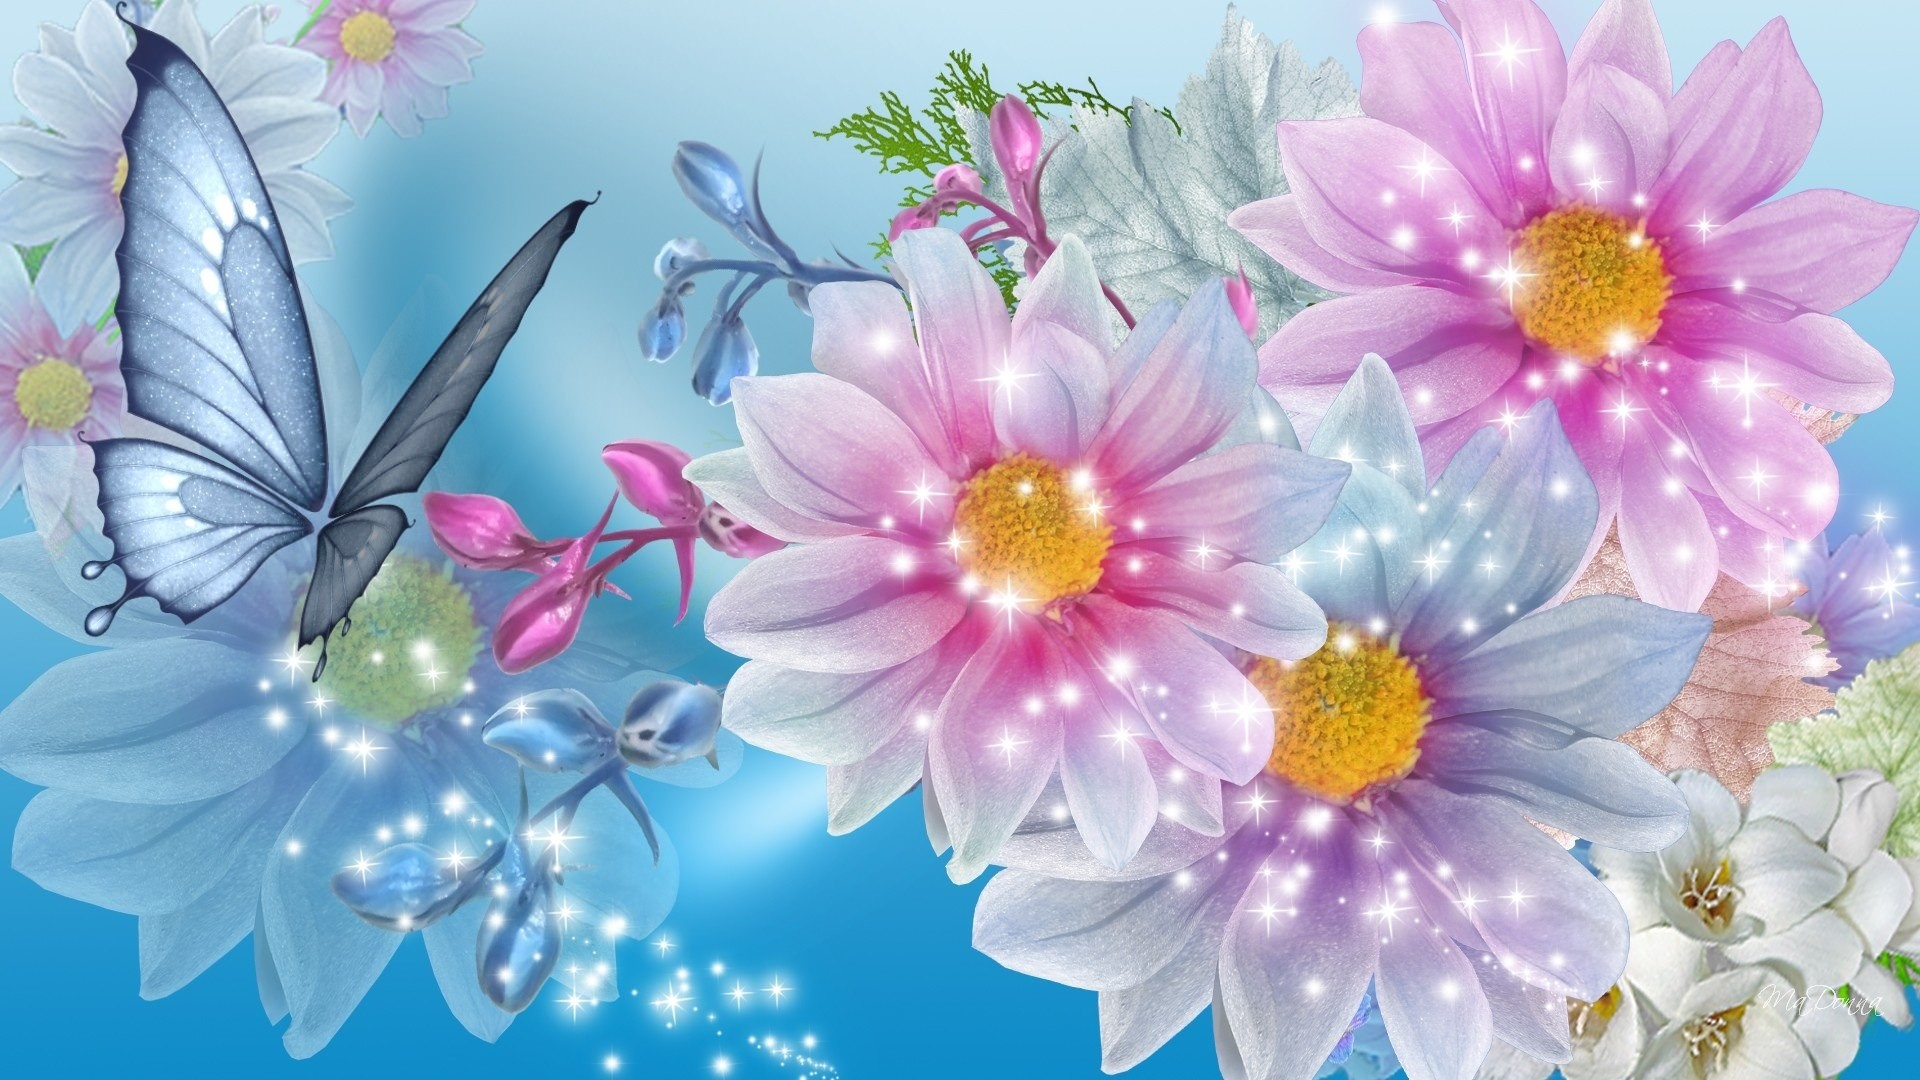 Beautiful Floral Backgrounds 44 Images